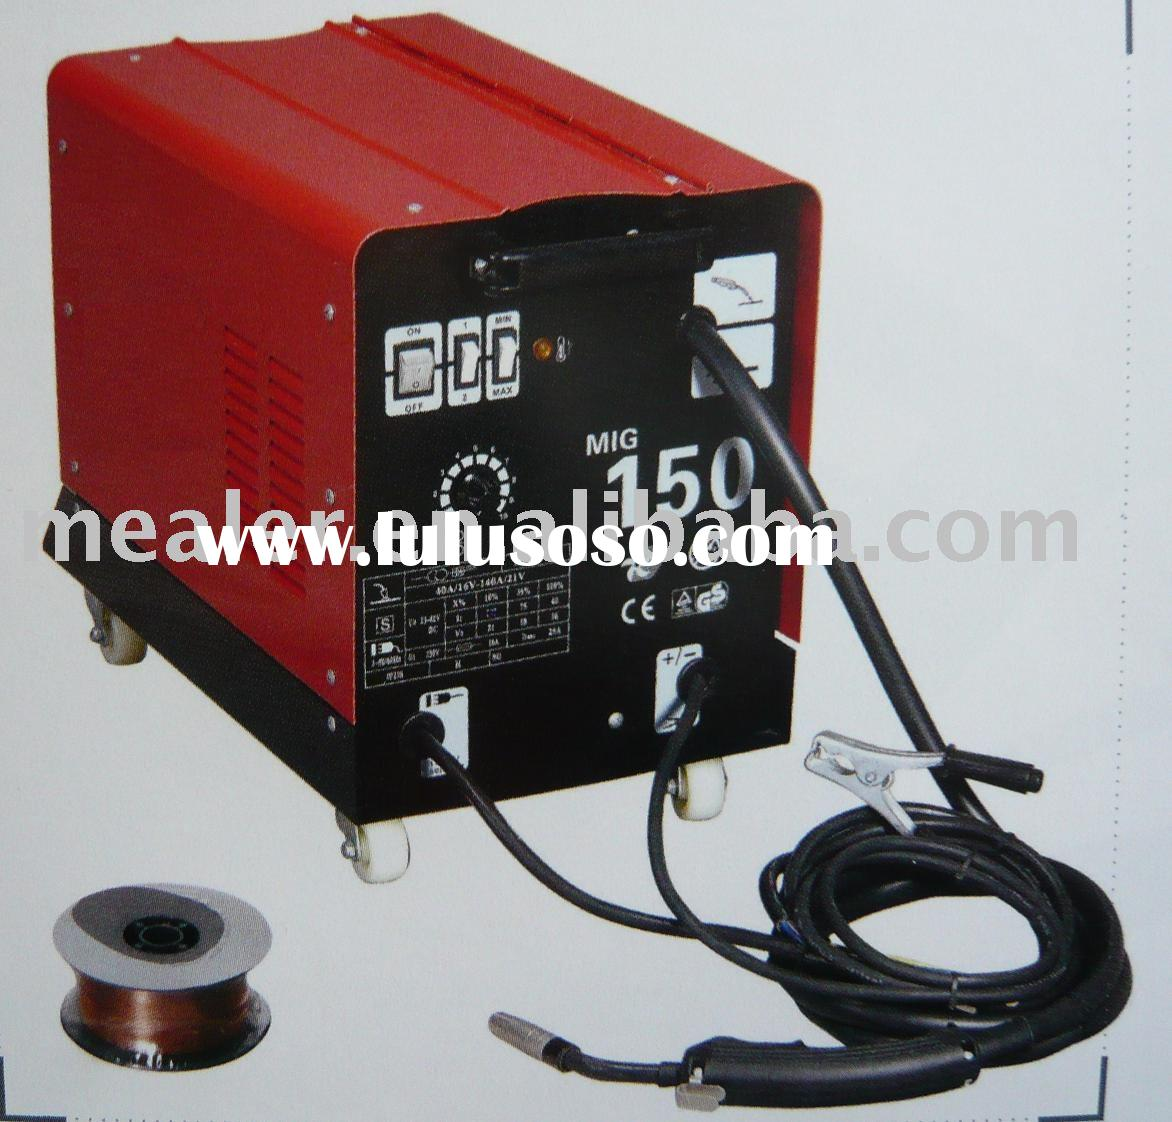 MIG-150 Transformer CO2/MAG portable light DIY welding equipment